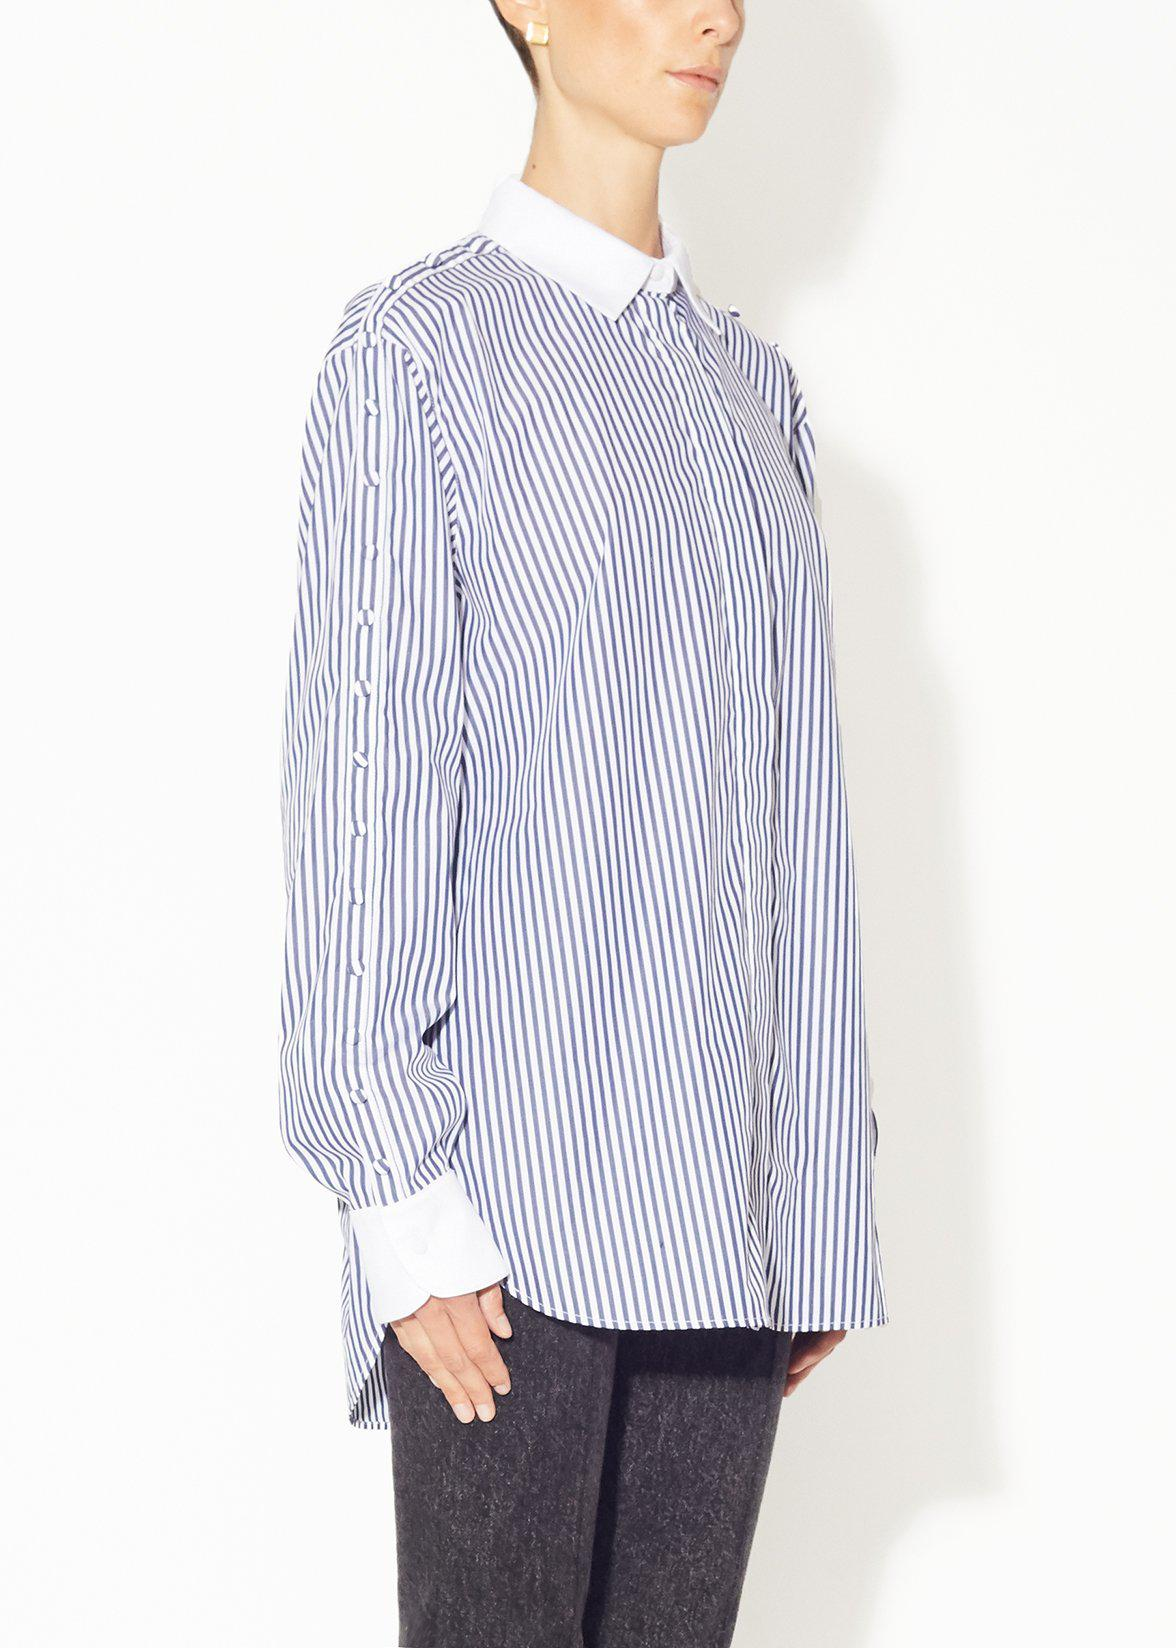 BUTTON SLEEVE SHIRT IN STRIPED SHIRTING